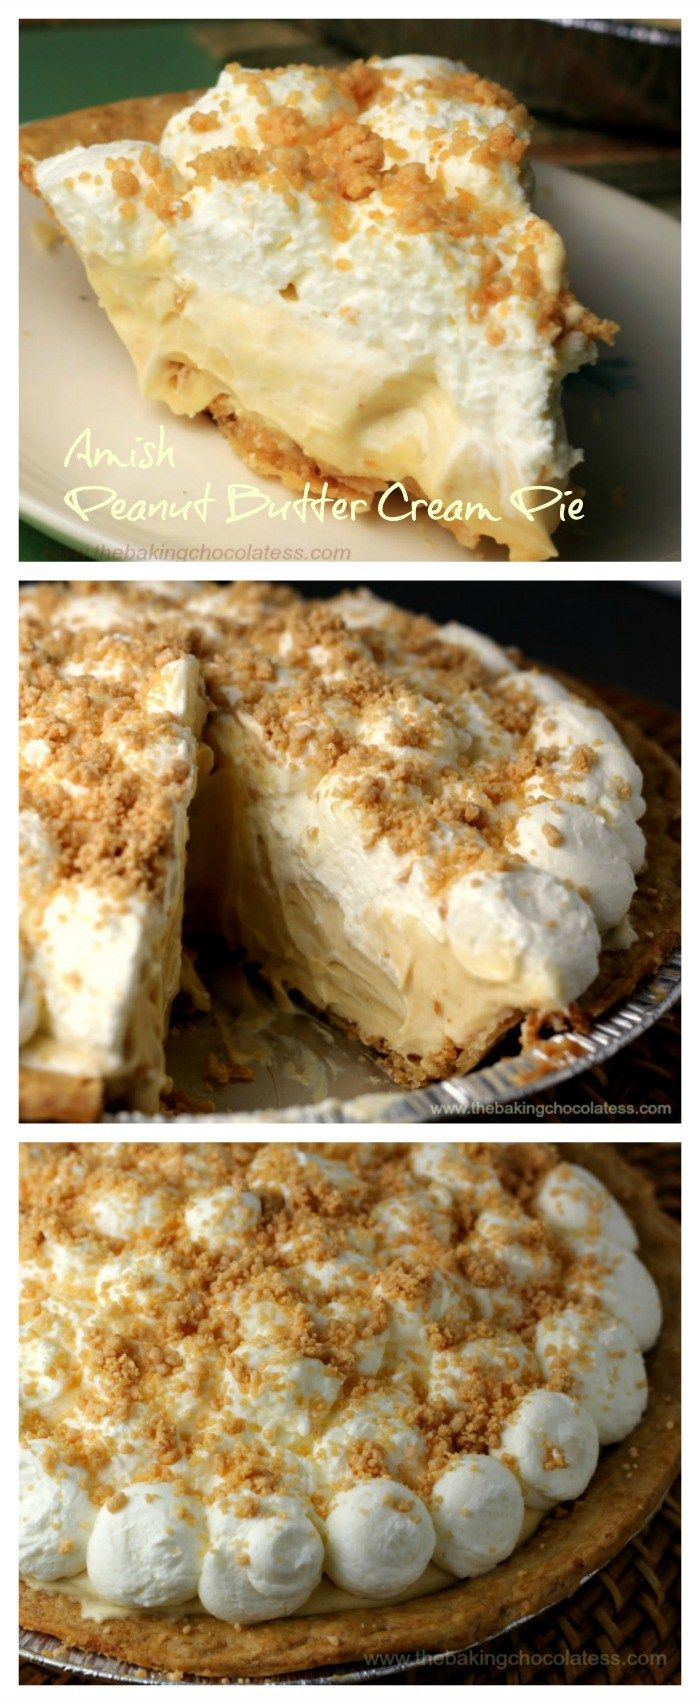 Amish Peanut Butter Cream Pie                                                                                                                                                                                 More